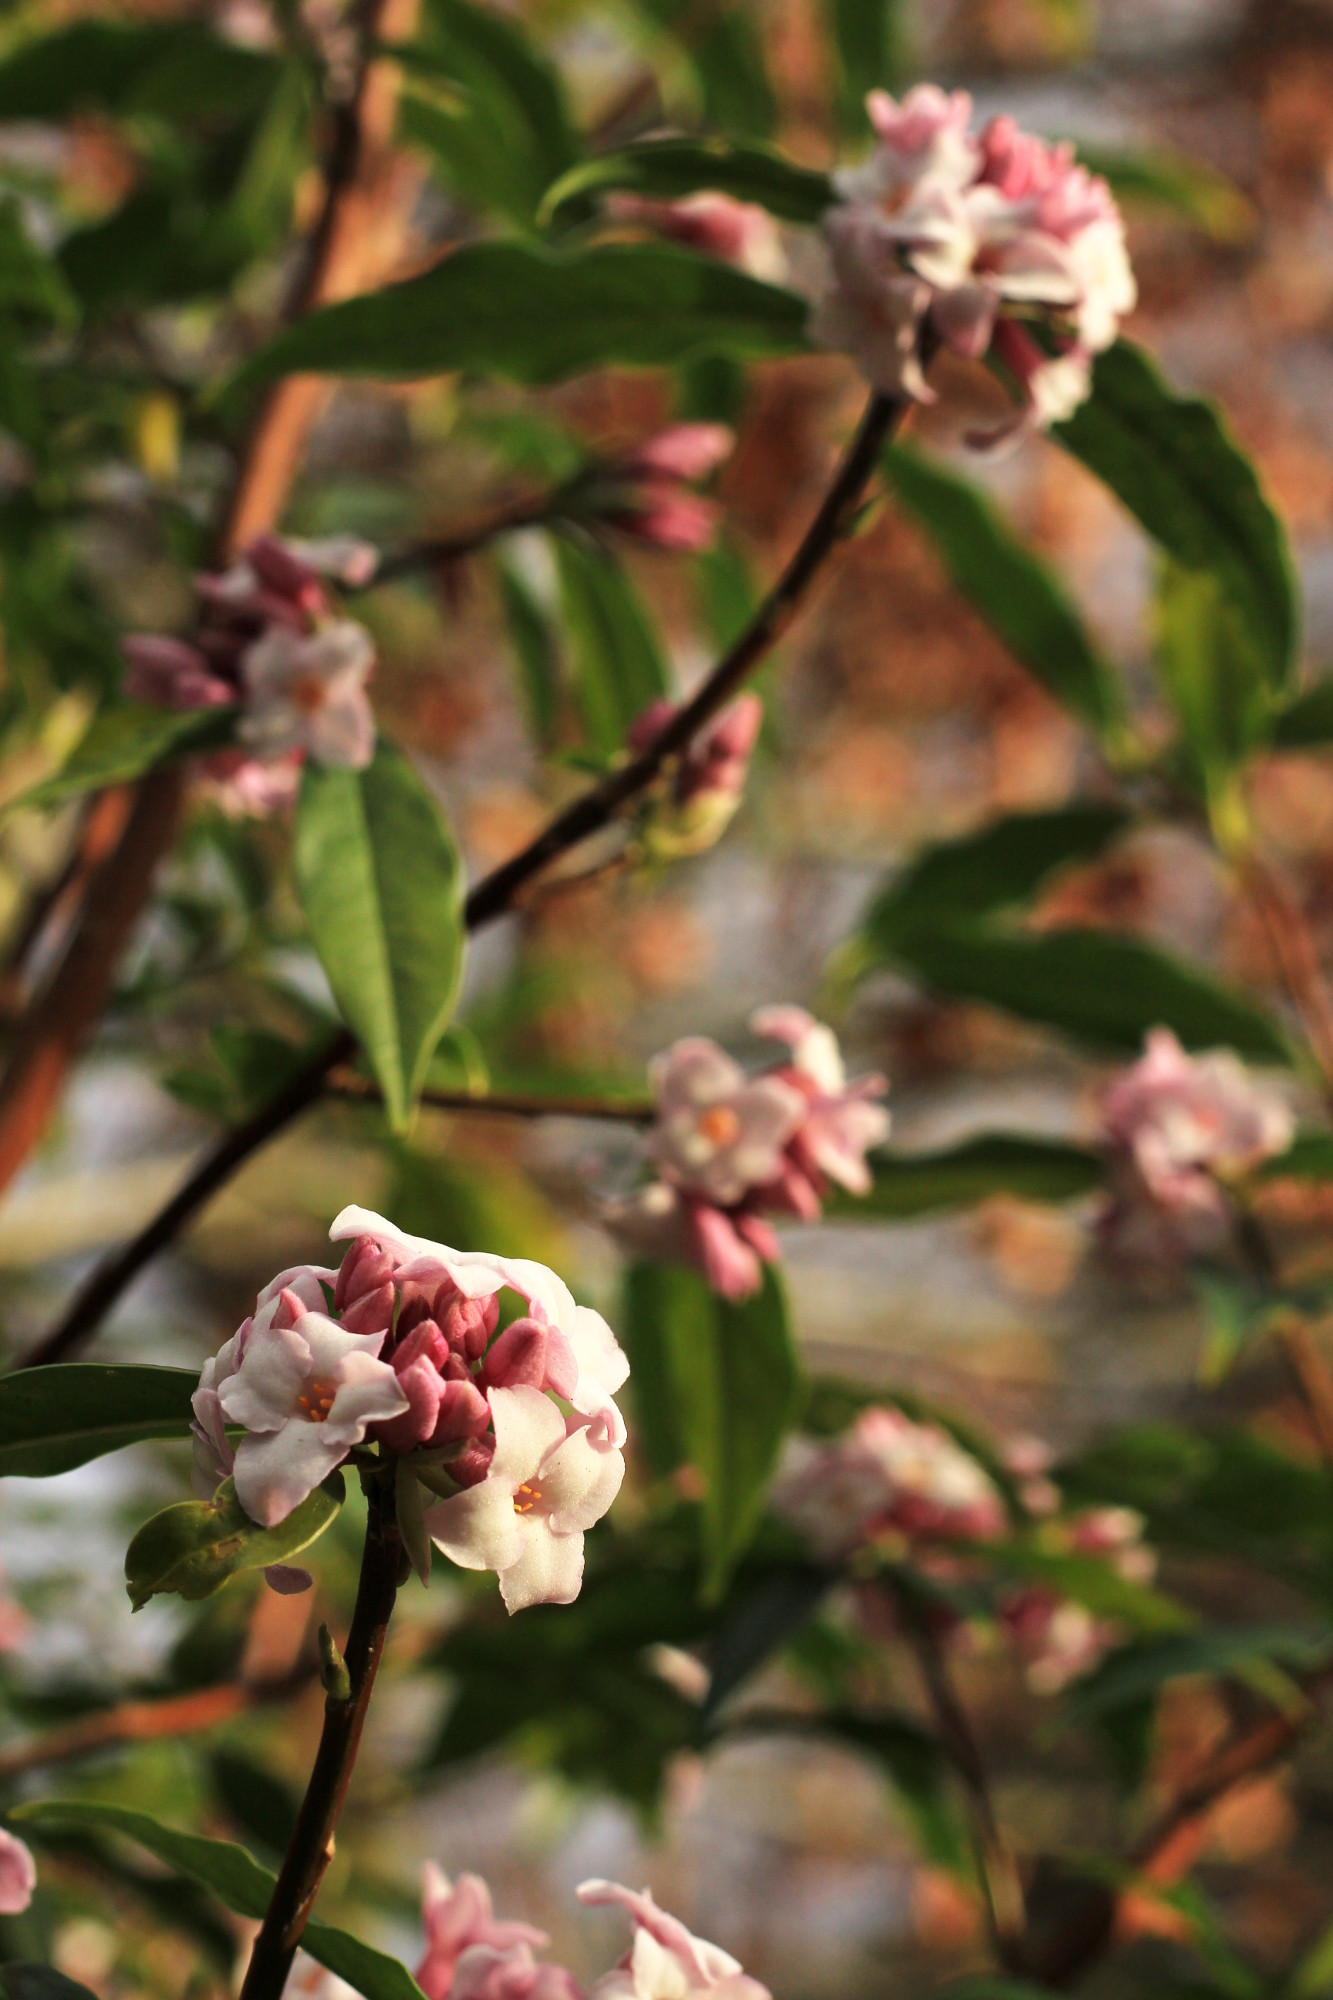 Viburnum, Whinfell Quarry Gardens, photo by Steve Withington